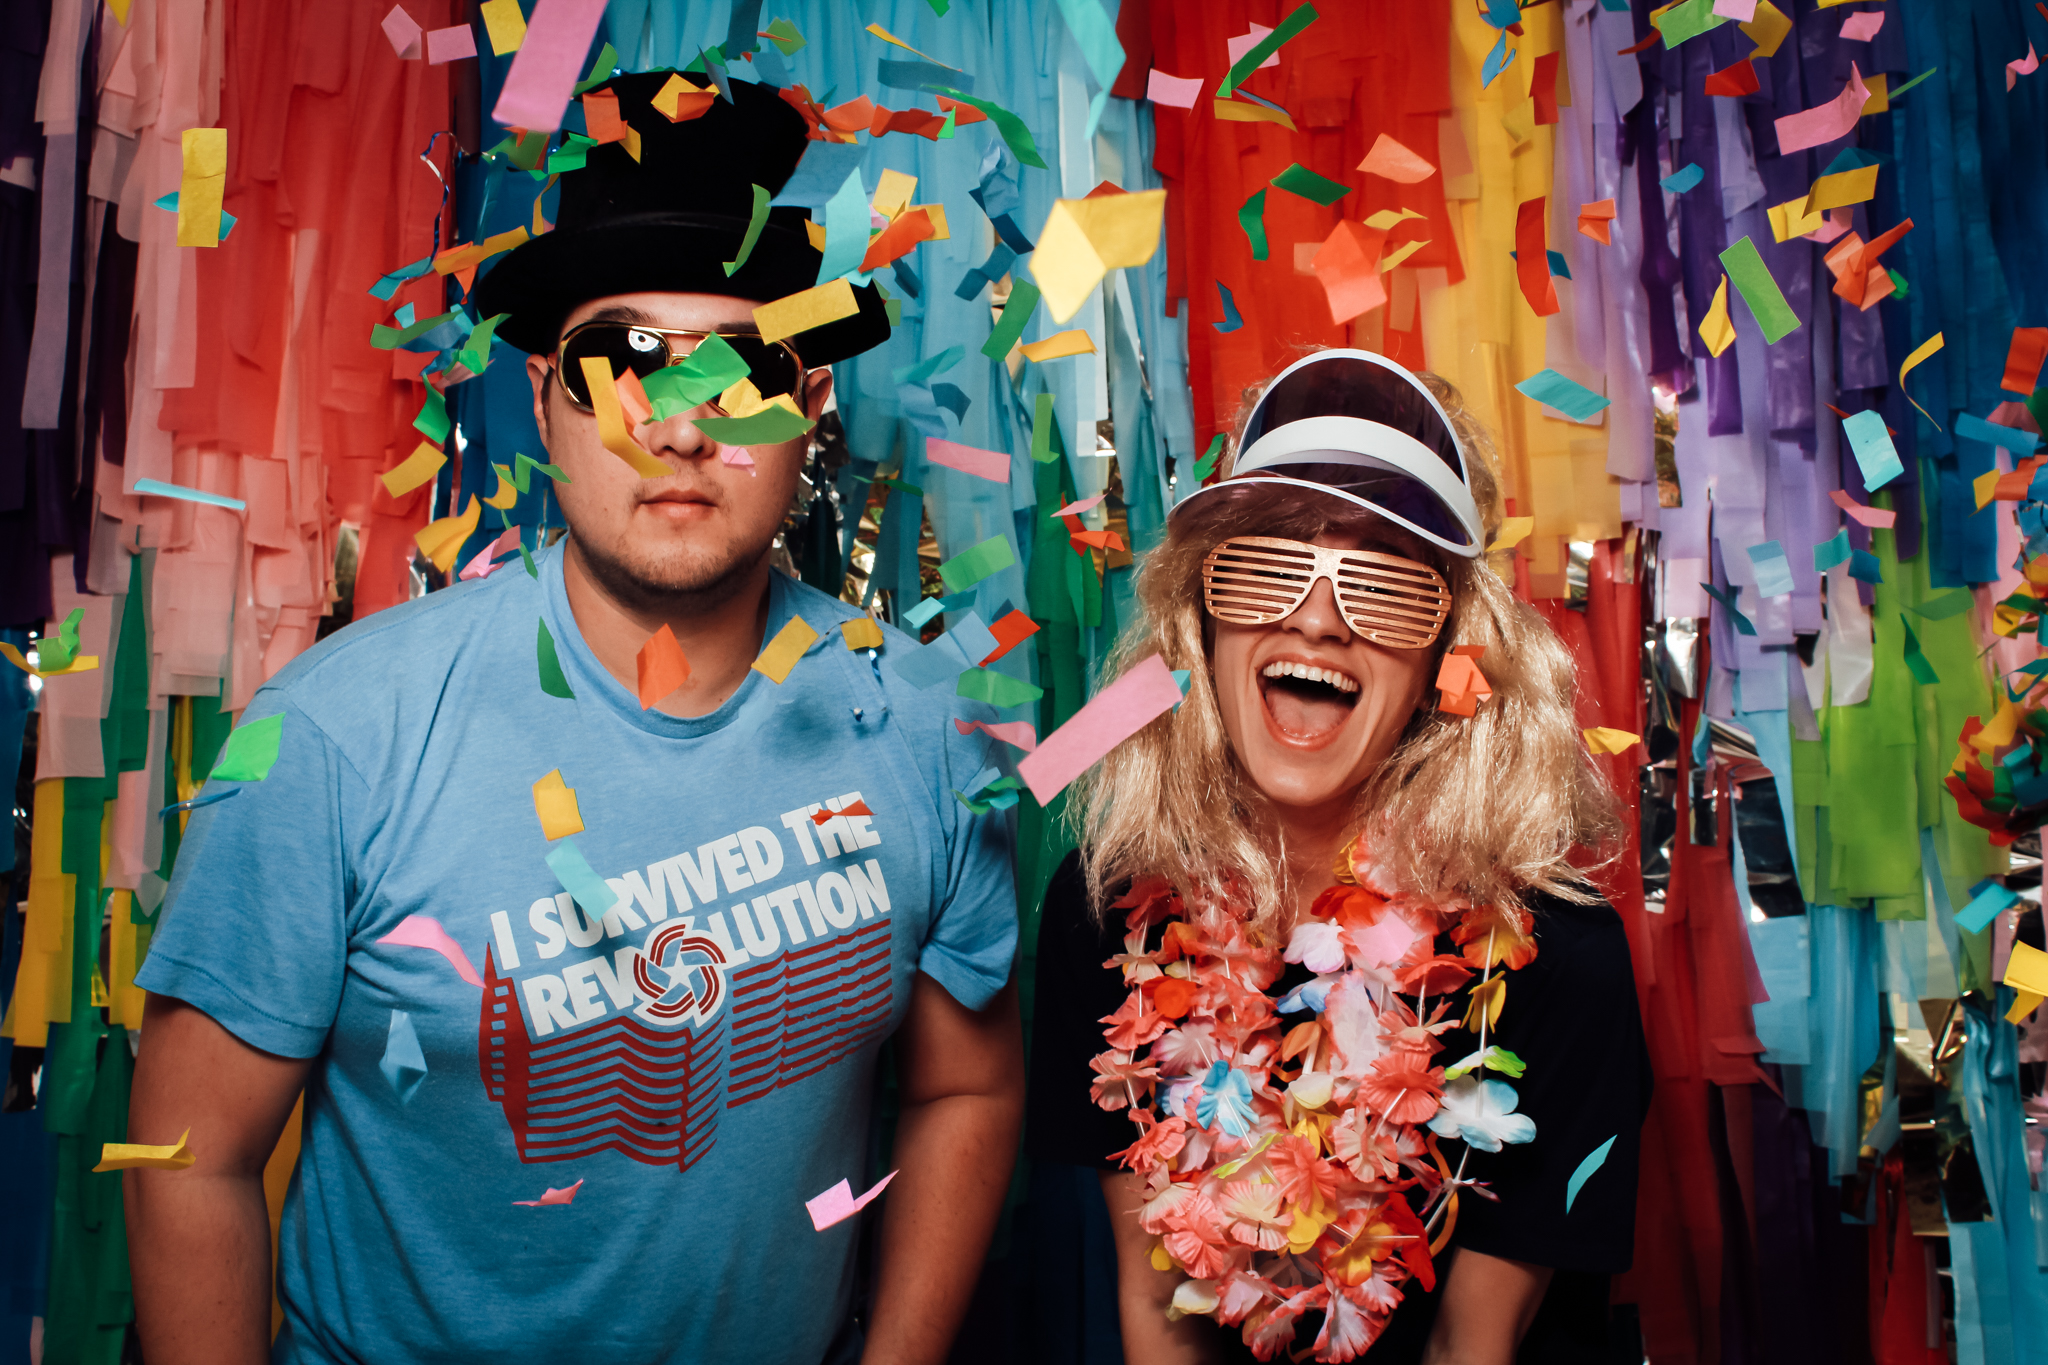 memphis-photobooth-rental-farout-photobooth (36 of 62).jpg